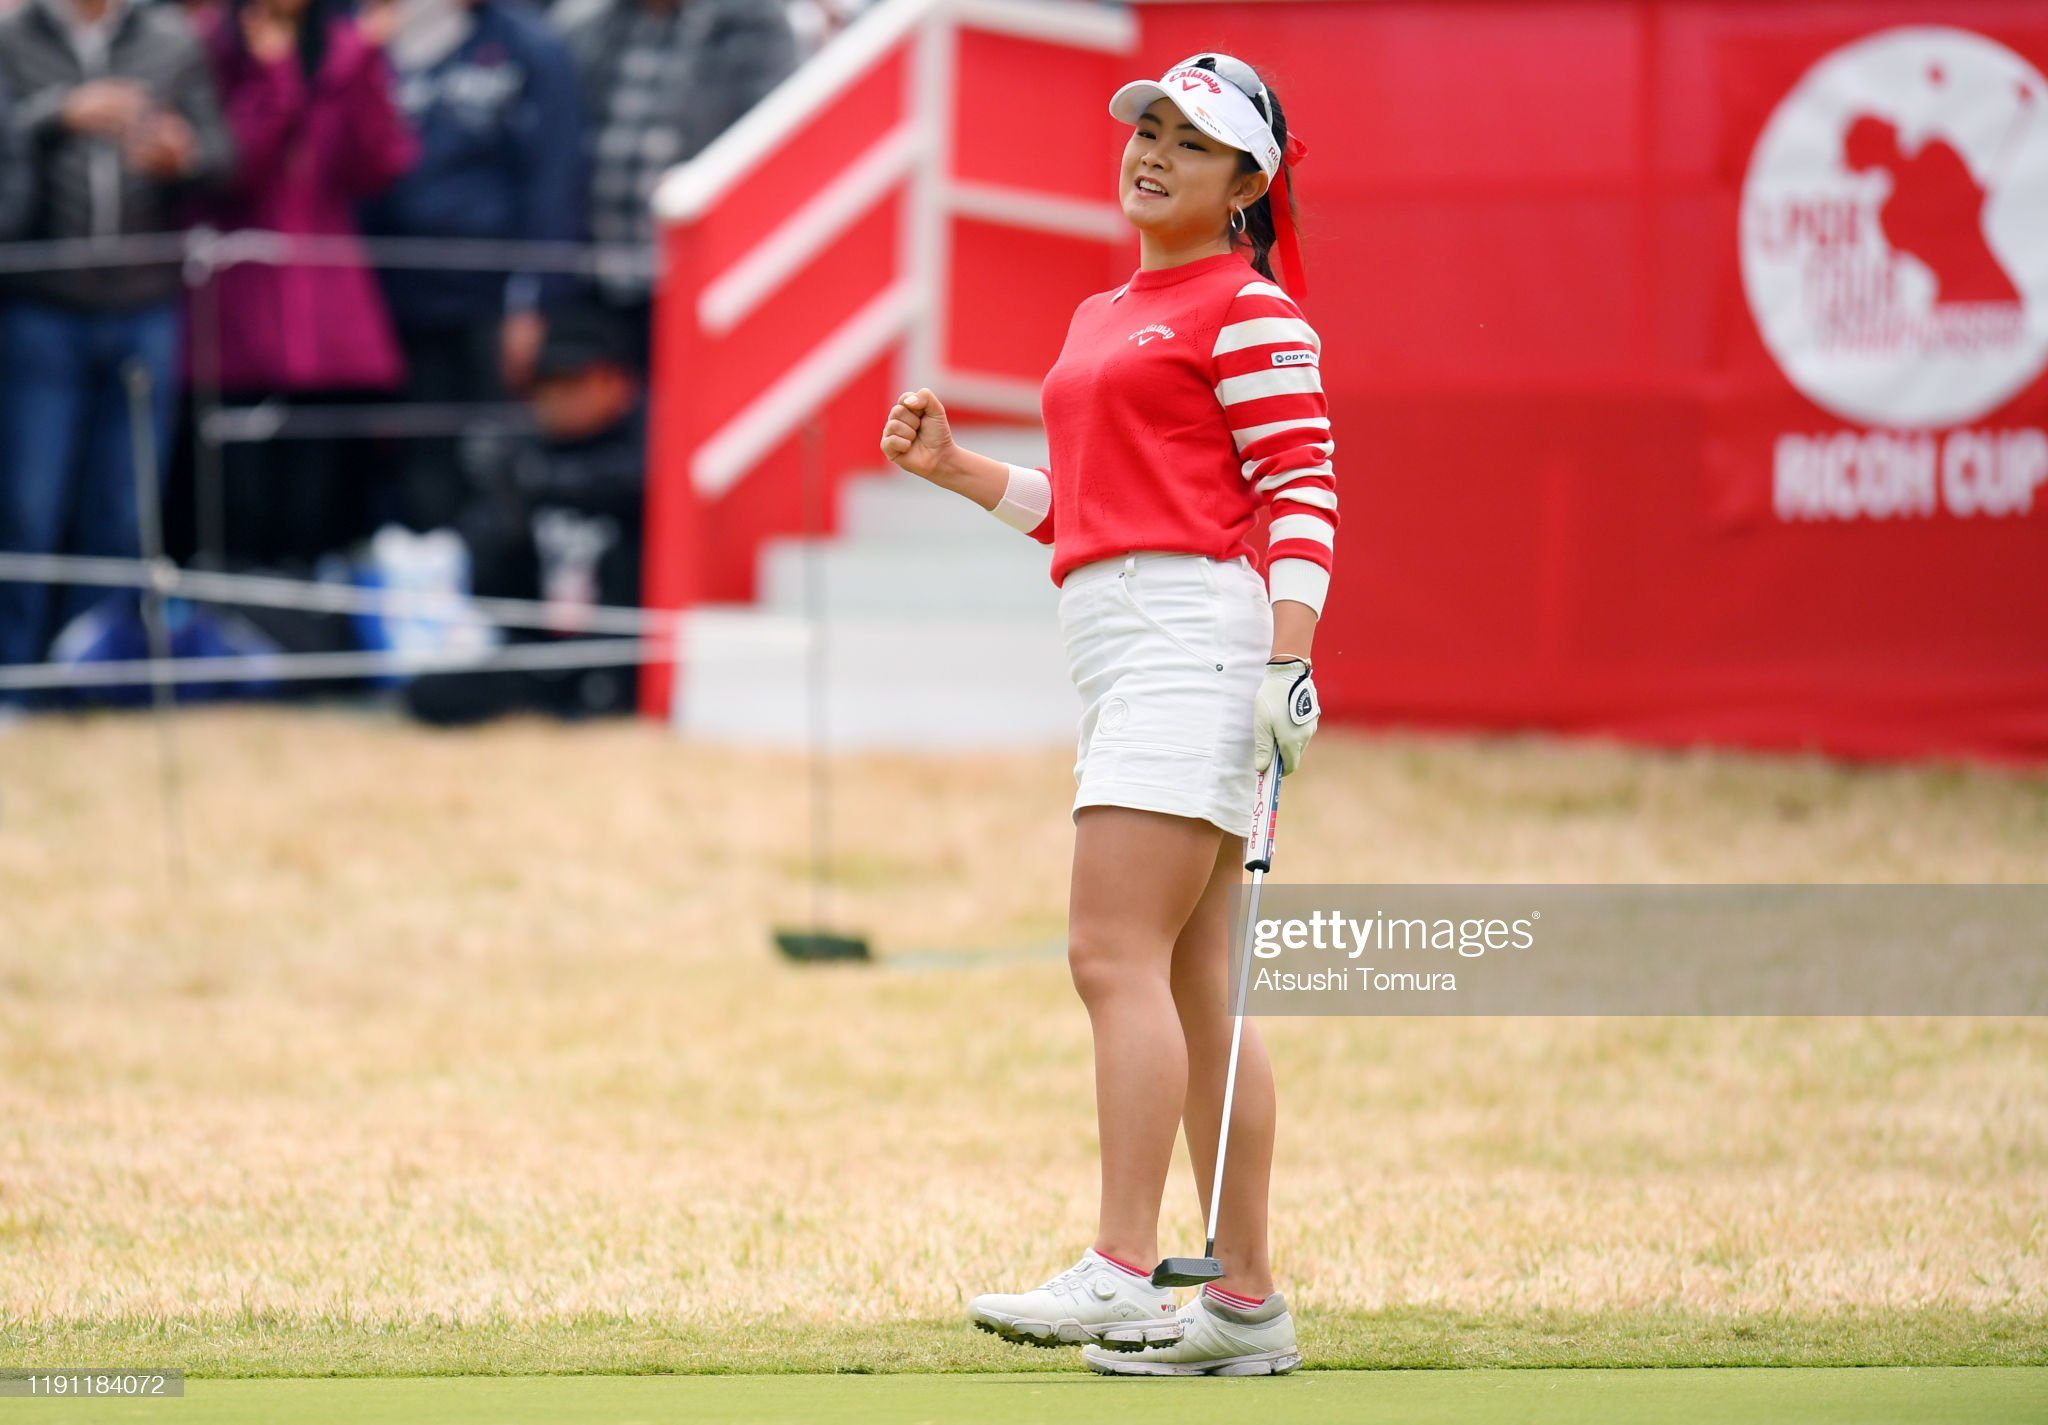 https://media.gettyimages.com/photos/yui-kawamoto-of-japan-celebrates-holing-out-with-the-birdie-on-the-picture-id1191184072?s=2048x2048